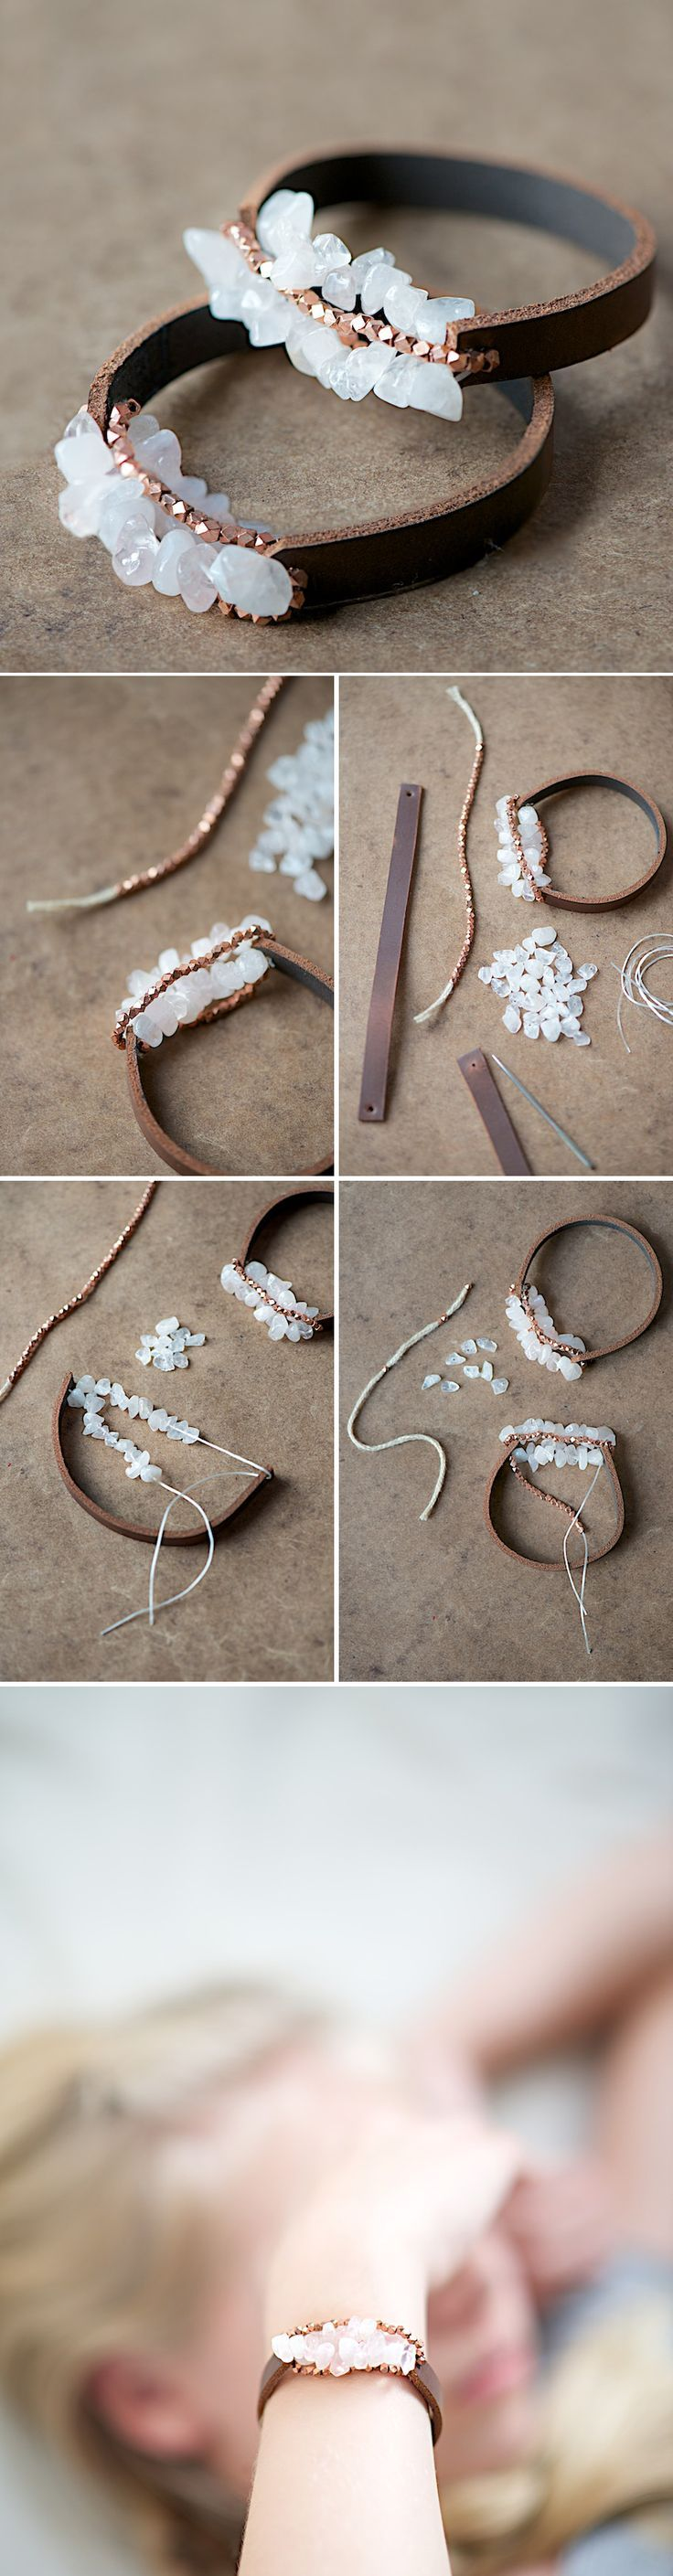 diy leather bracelet tutorial - photo #8